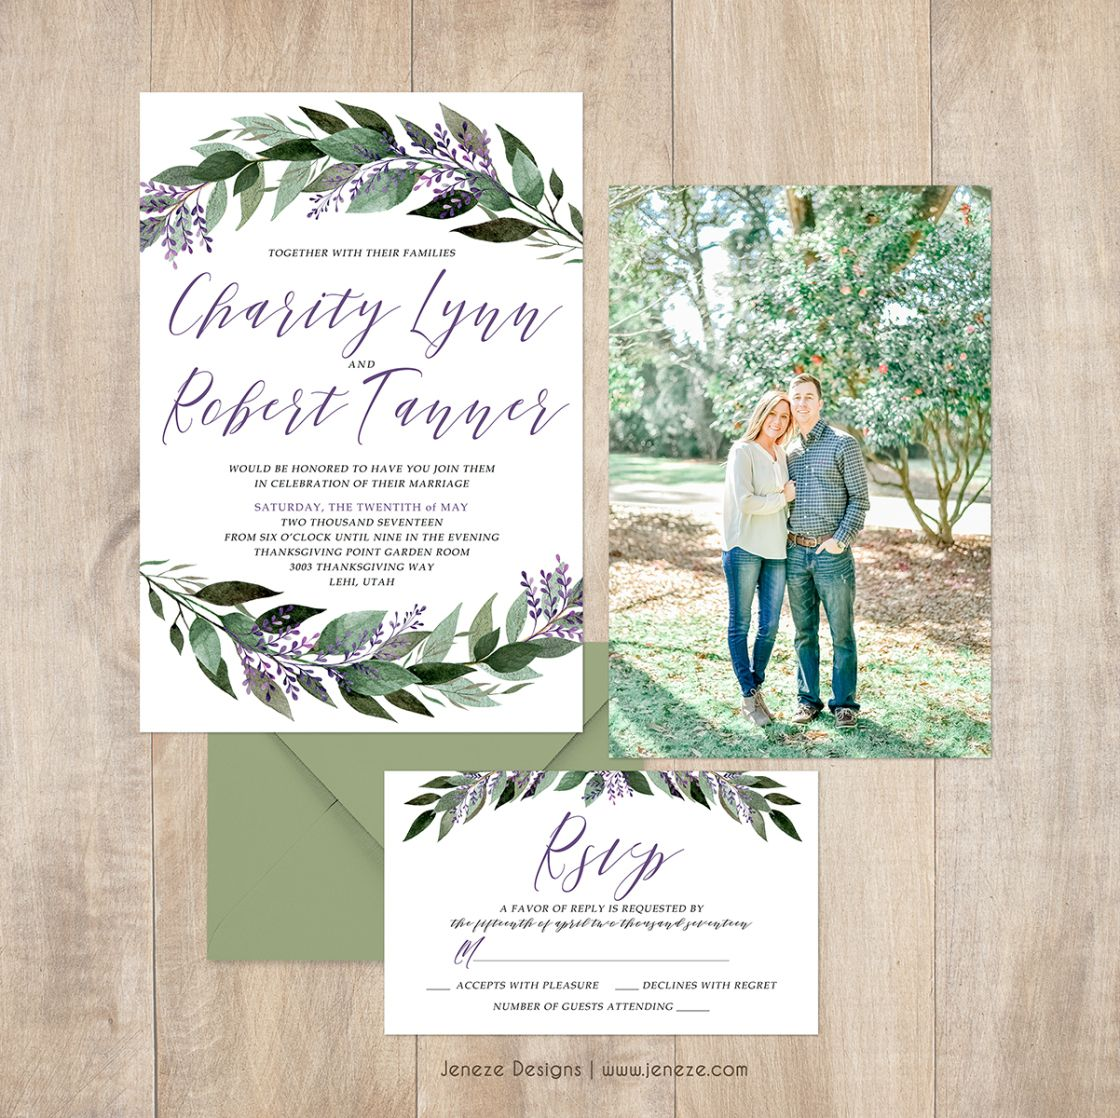 Greenery wedding invitations with a touch of lavender Beautiful